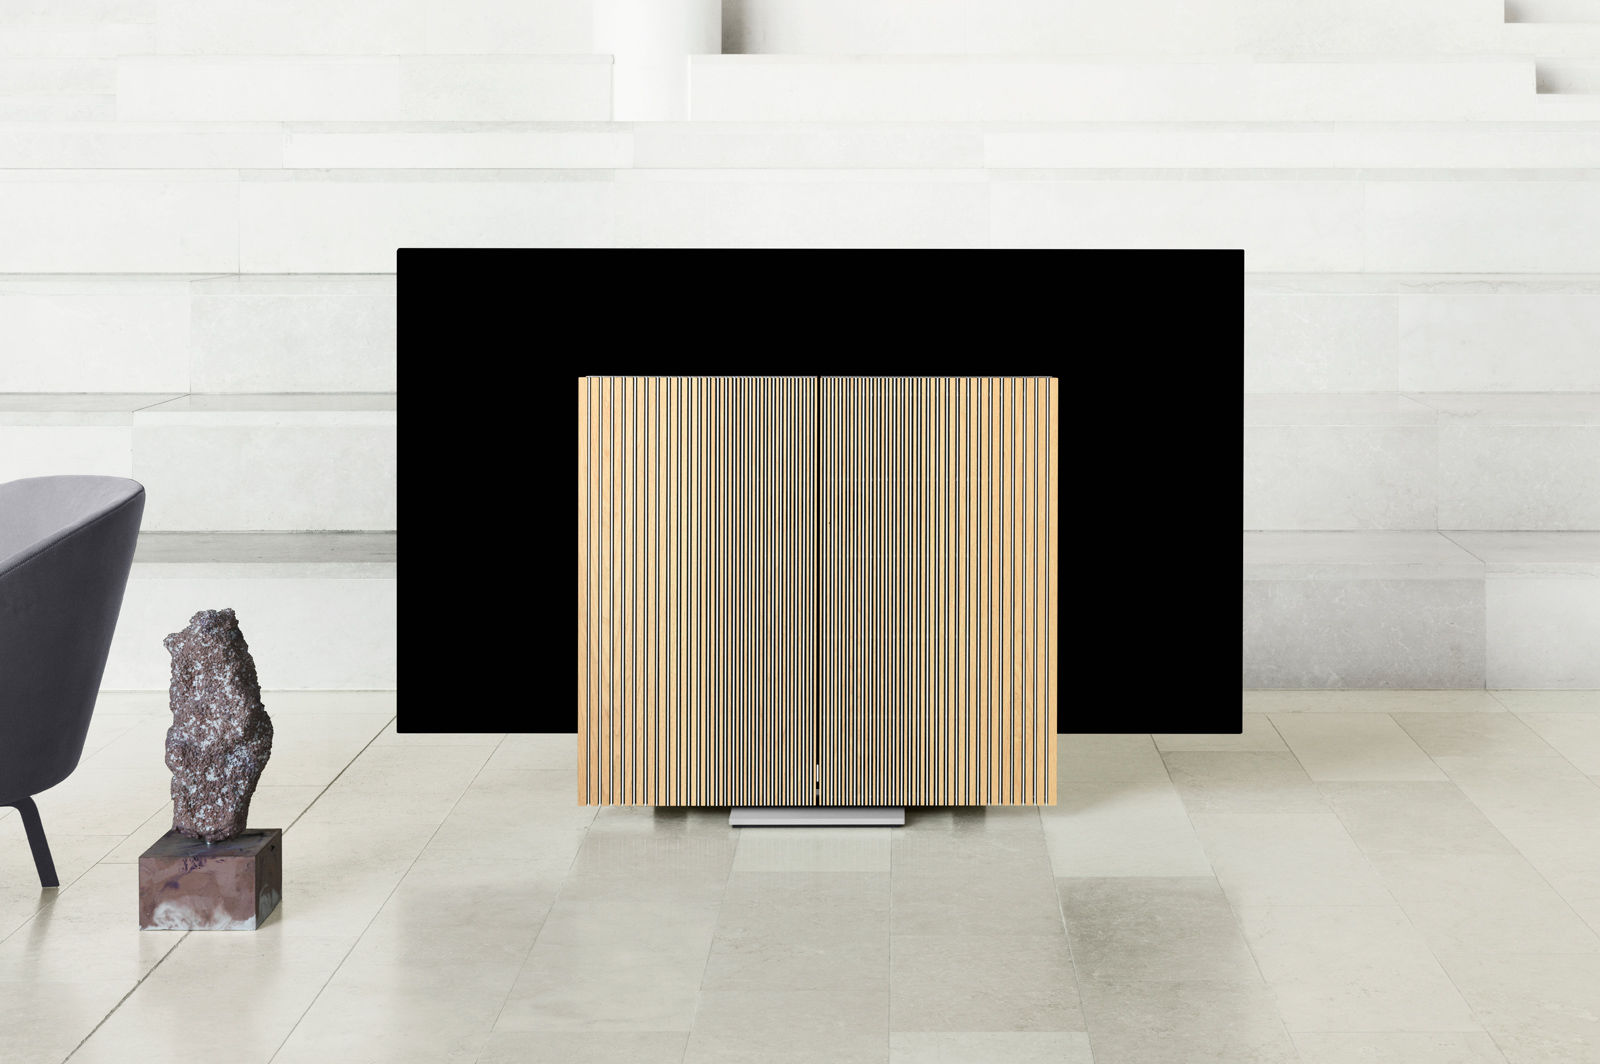 bang olufsen unveils the beovision harmony an all in one tv and speaker system techspot. Black Bedroom Furniture Sets. Home Design Ideas